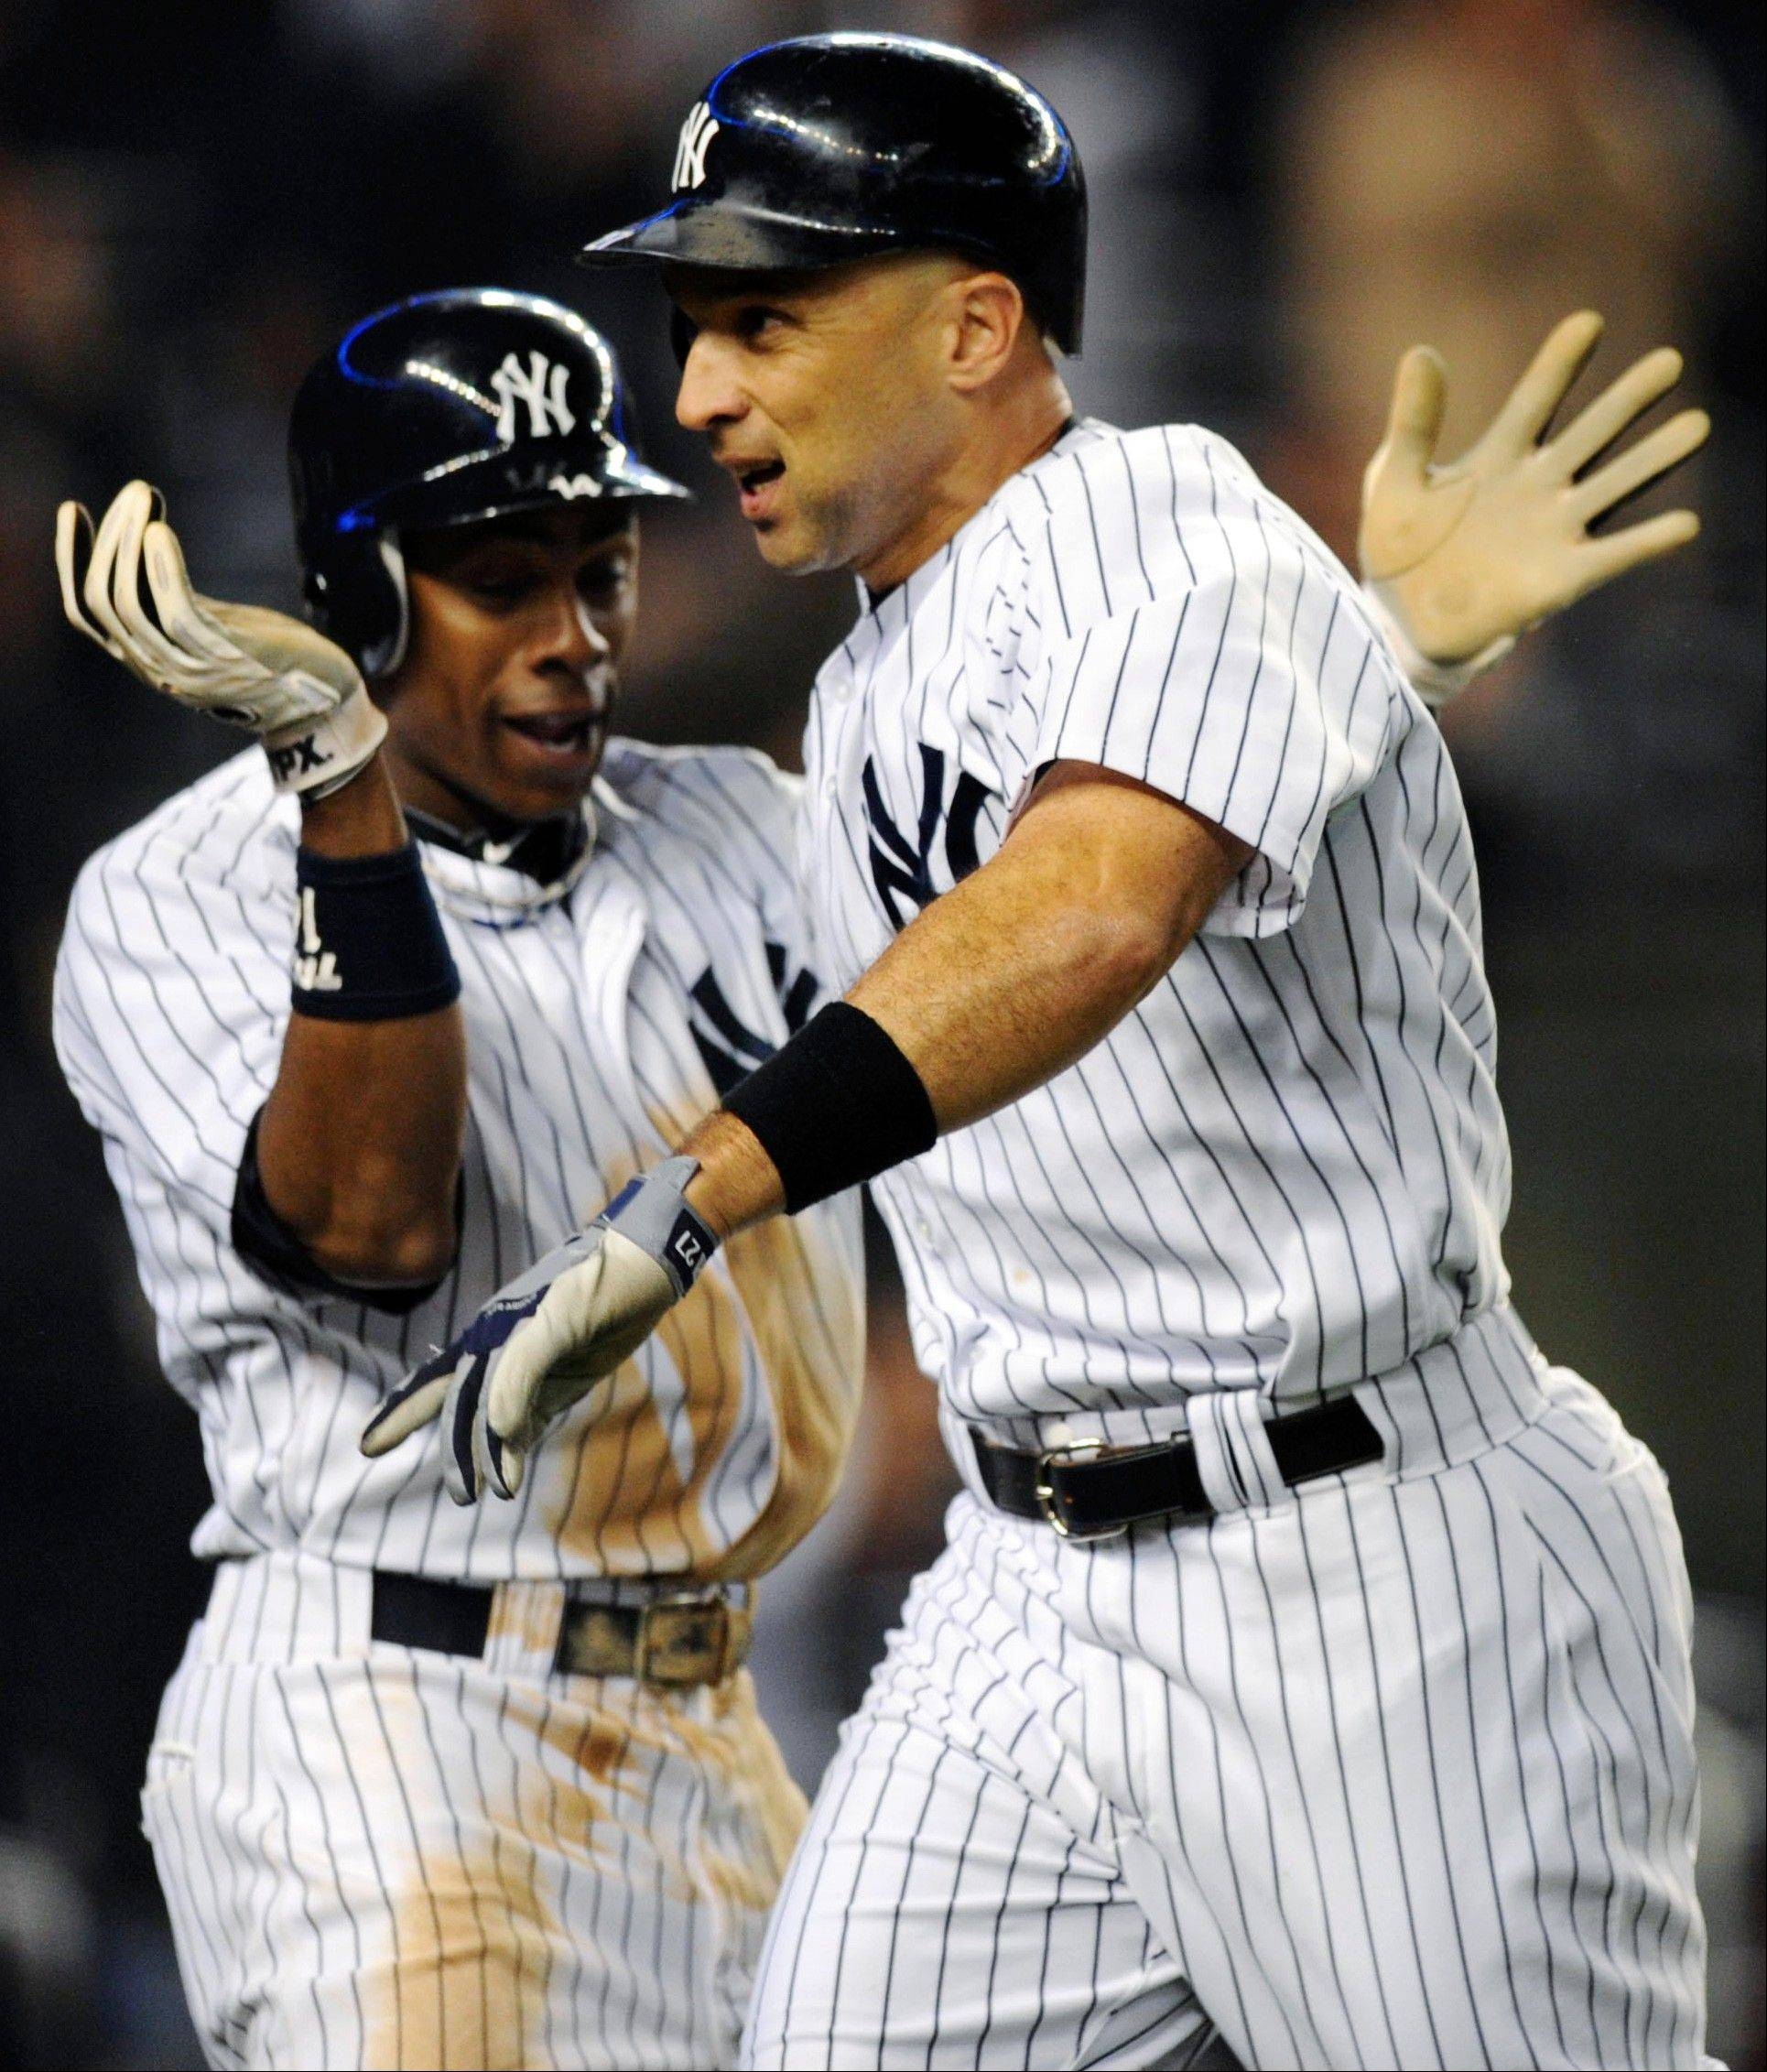 The Yankees' Raul Ibanez, right, is congratulated by Curtis Granderson after hitting a two-run home run against the Boston Red Sox during the ninth inning Tuesday in New York. The Yankees won 4-3 in the 12th inning.